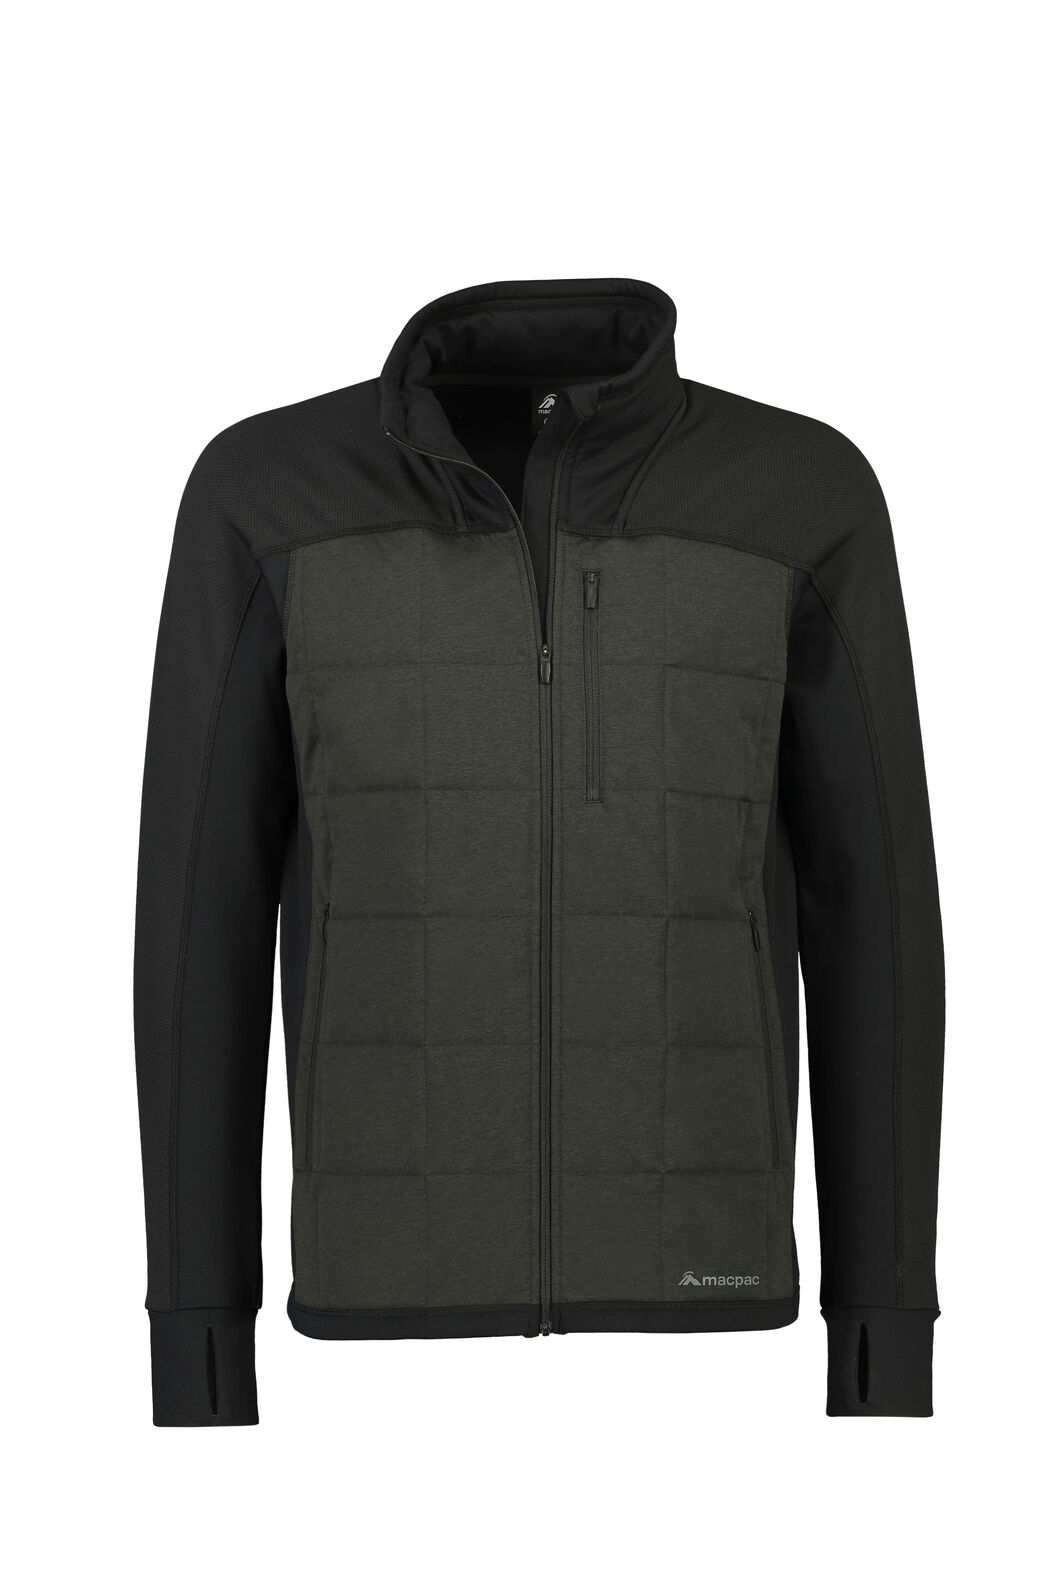 Macpac Accelerate PrimaLoft® Fleece Jacket — Men's, Black, hi-res